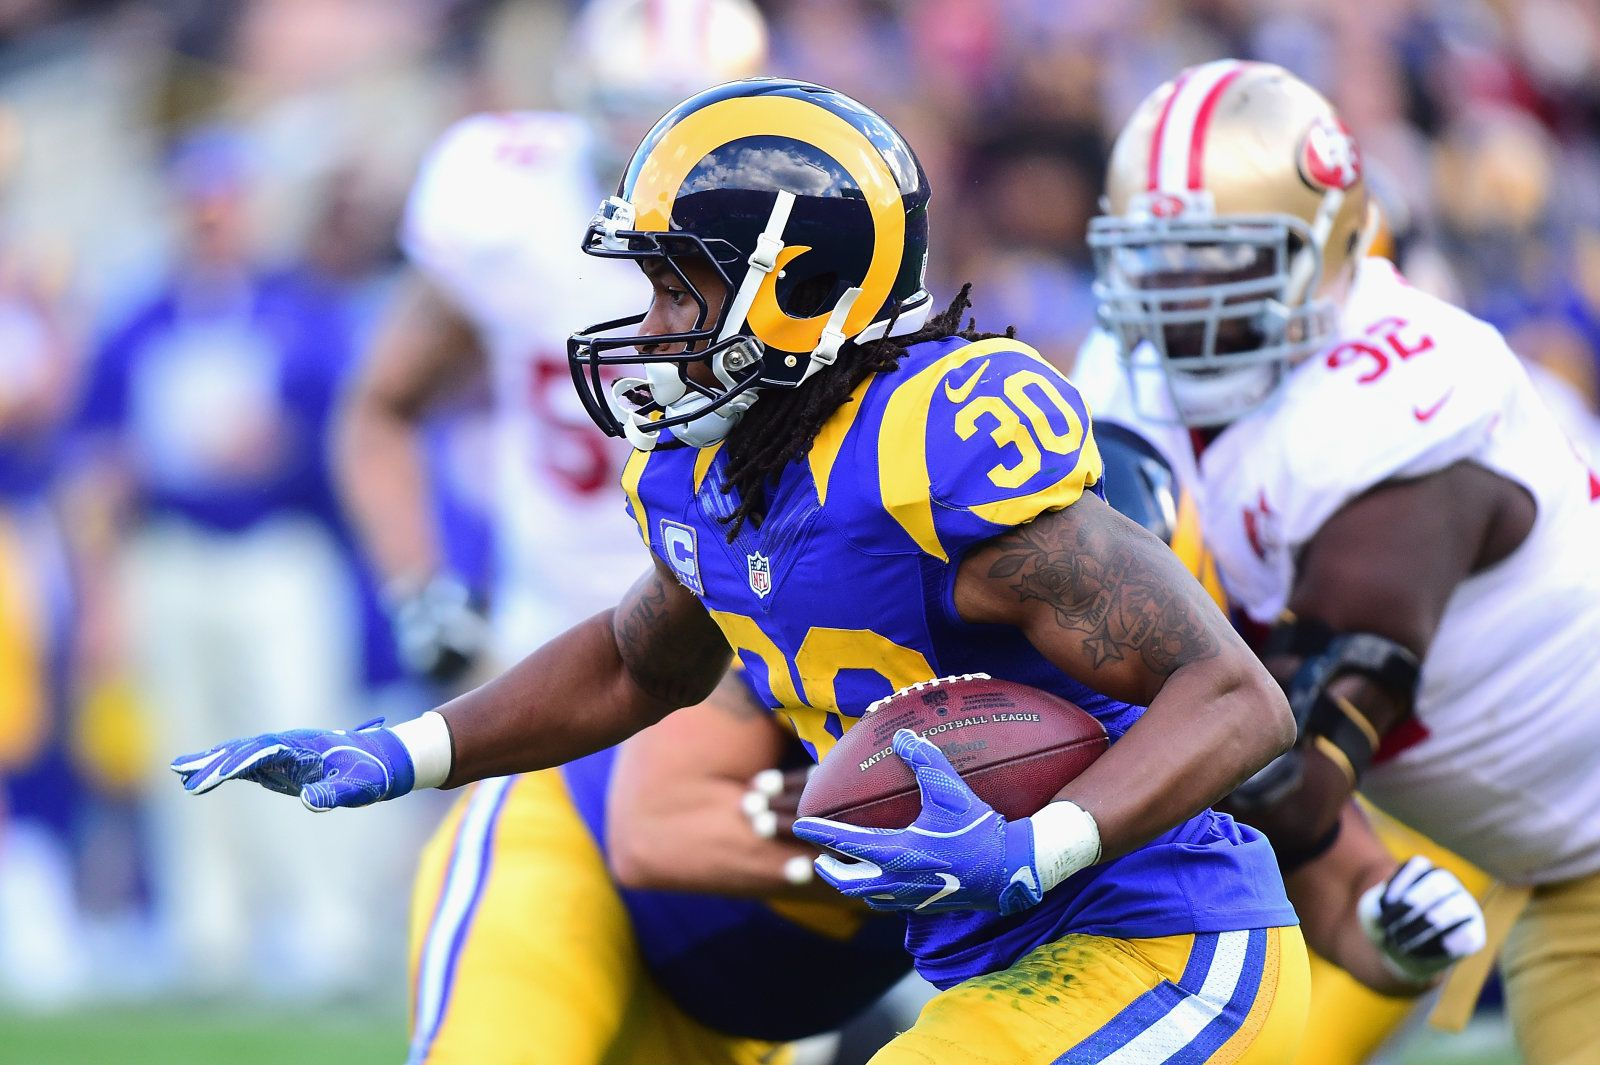 Amazon S Nfl Series Goes Inside The Huddle For A Second Season